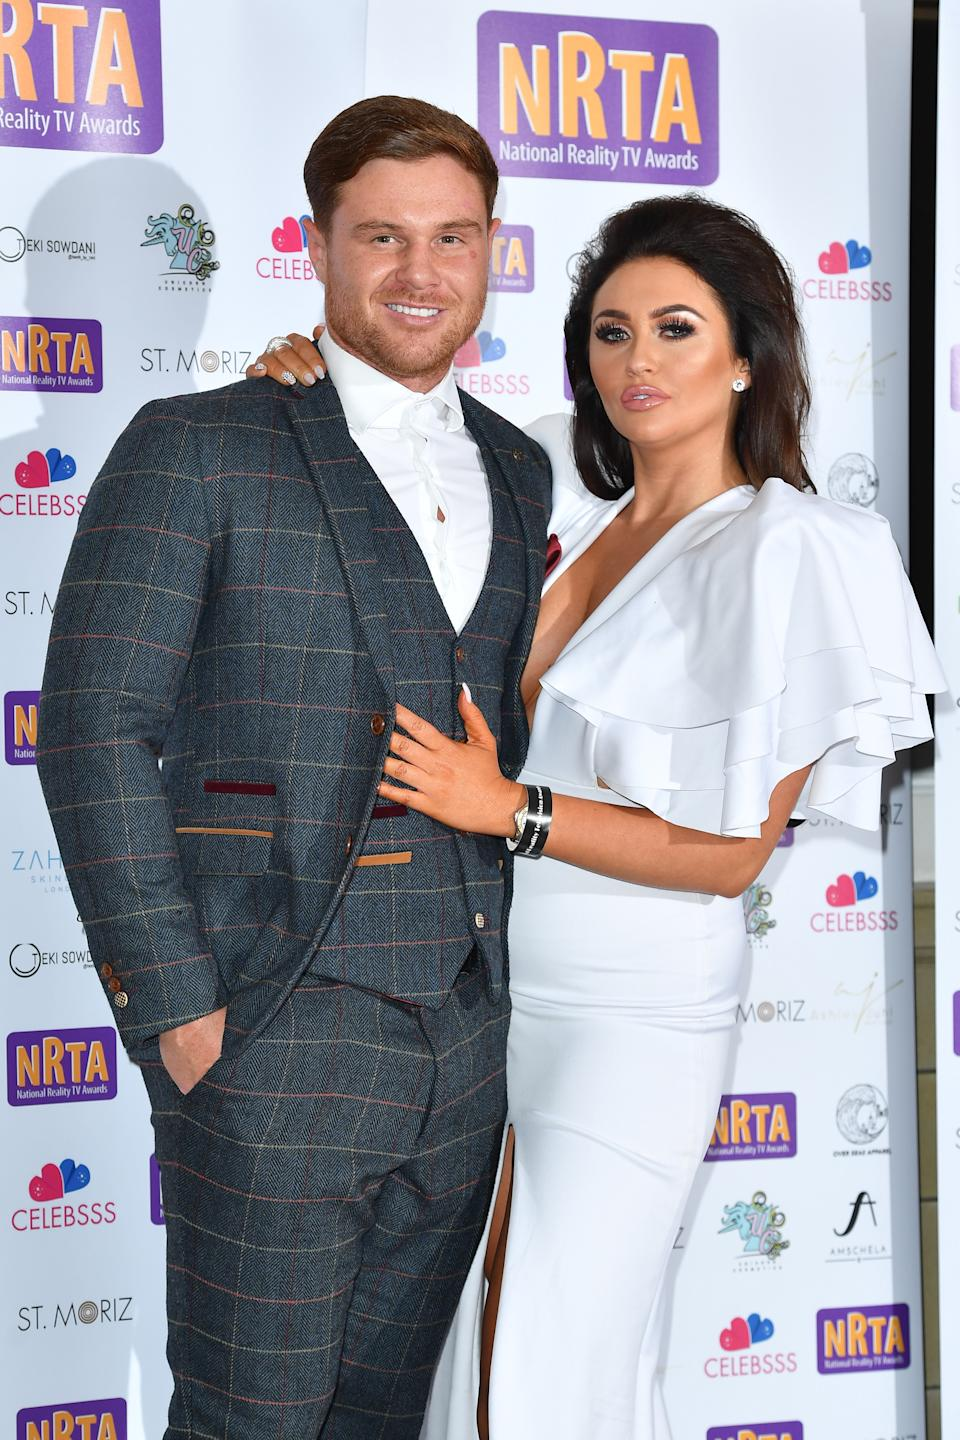 Matthew Sarsfield and Charlotte Dawson attend the National Reality TV Awards held at Porchester Hall on September 25, 2018 in London, England.  (Photo by Jeff Spicer/Getty Images)